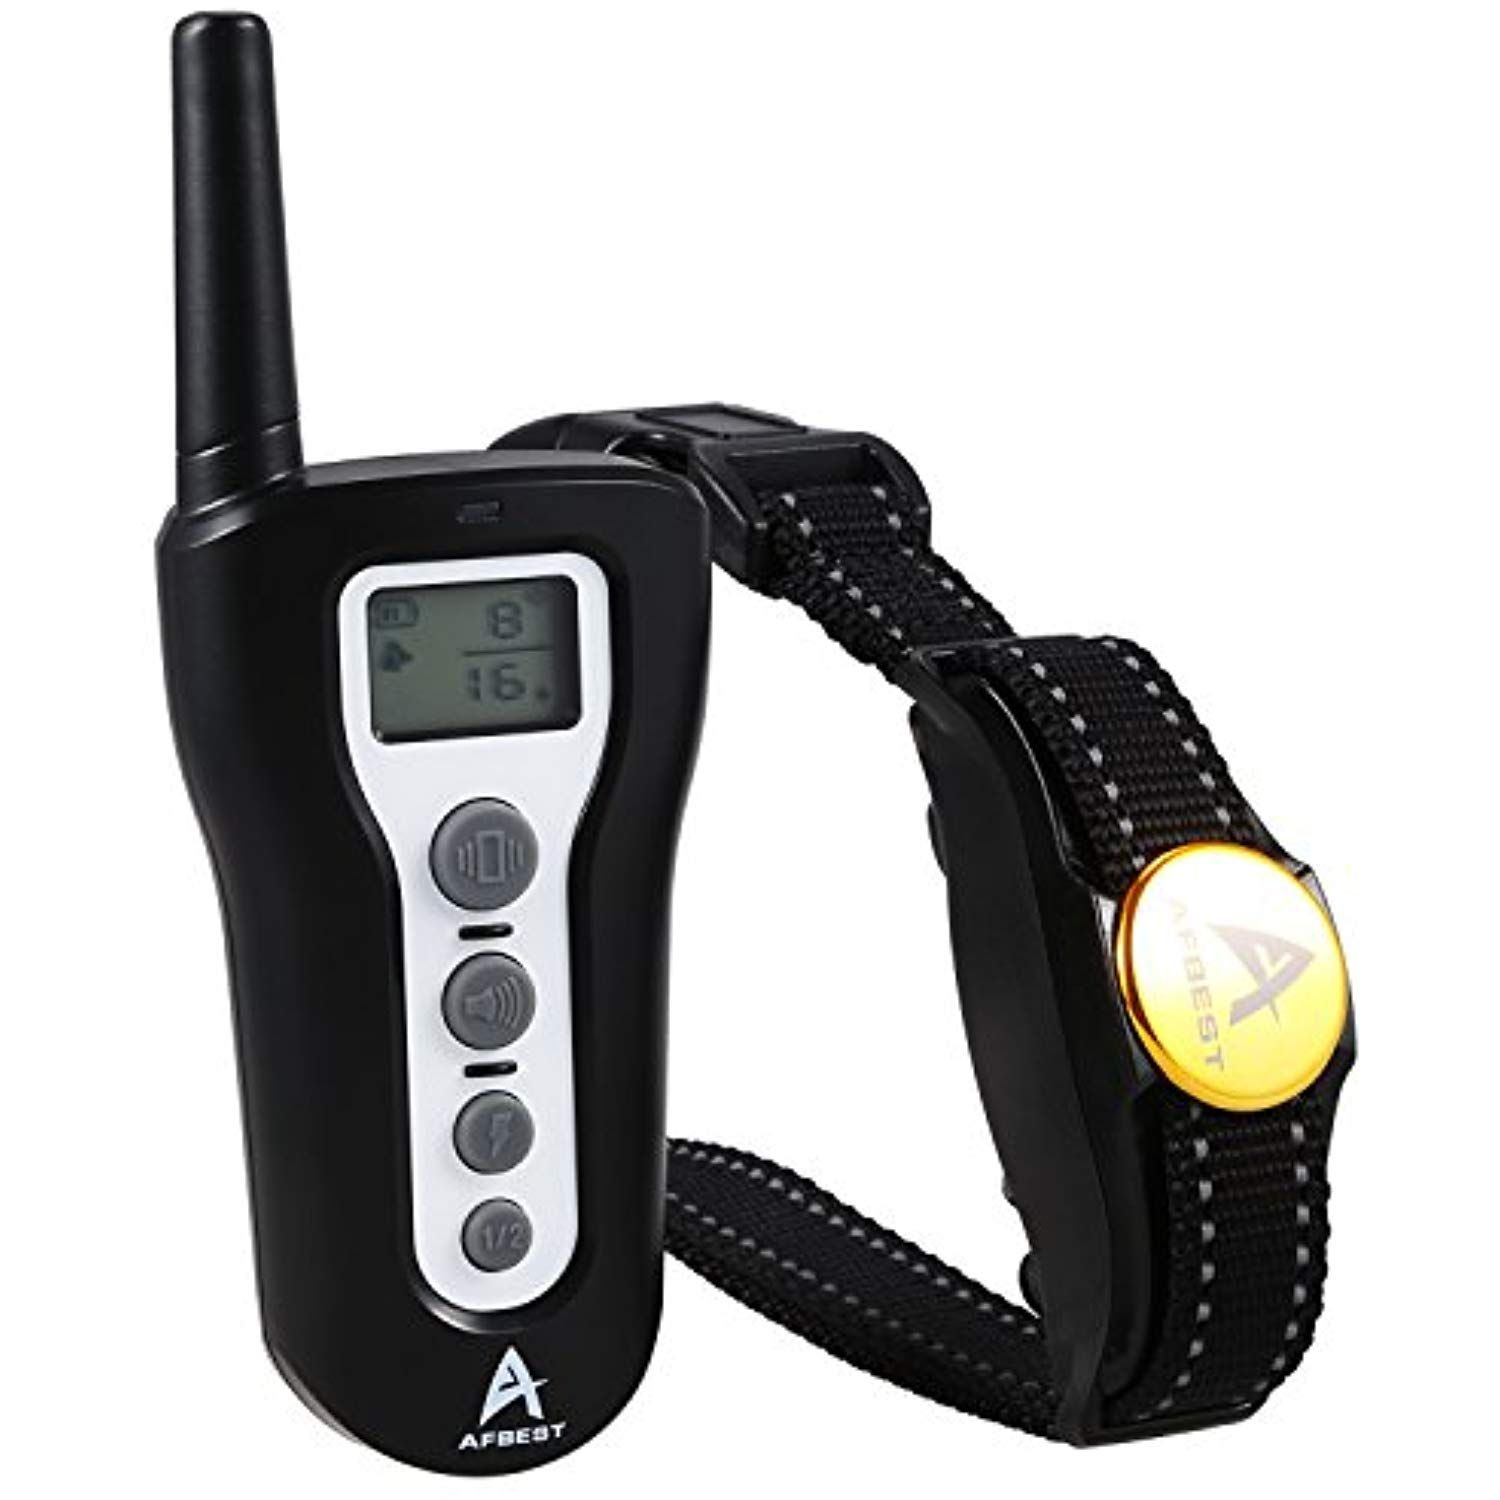 Afbest dog training collar 100 waterproof and 1000ft